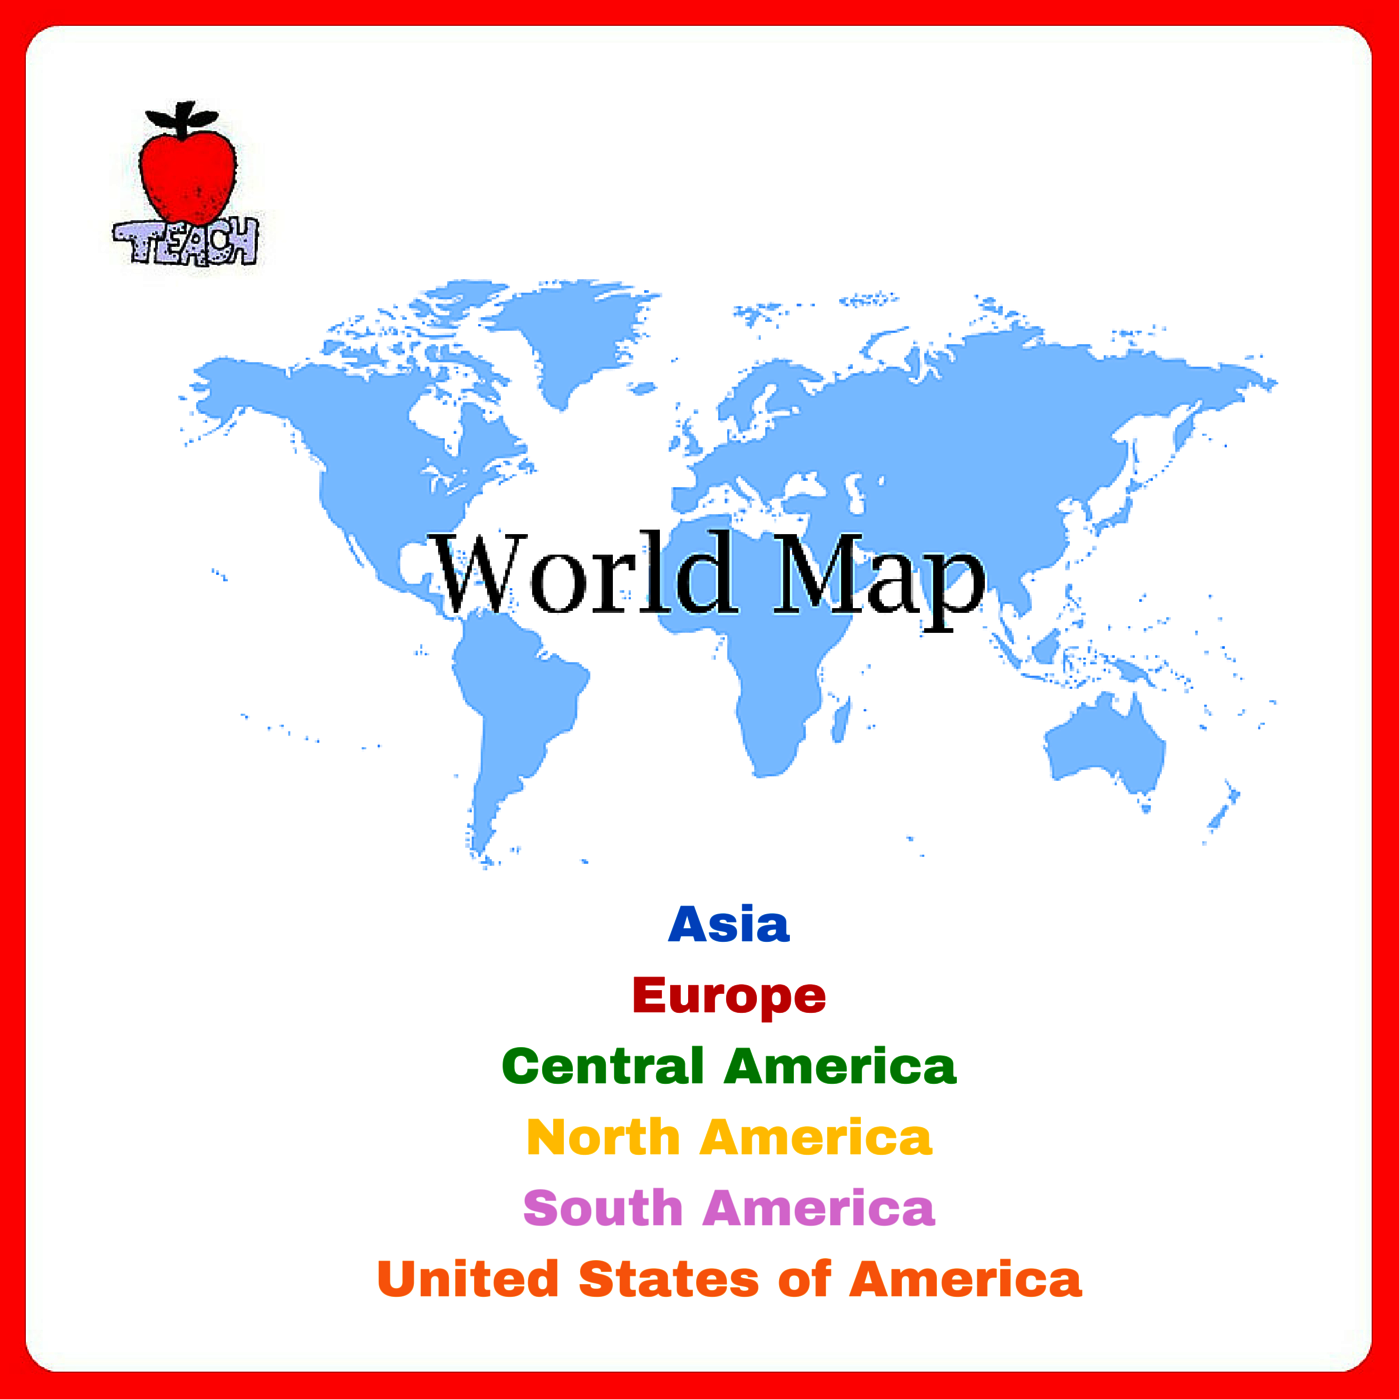 Review world map skills and basic geography pinterest map skills review world map skills and basic geography learn location of countries around the globe with printable world map gumiabroncs Image collections